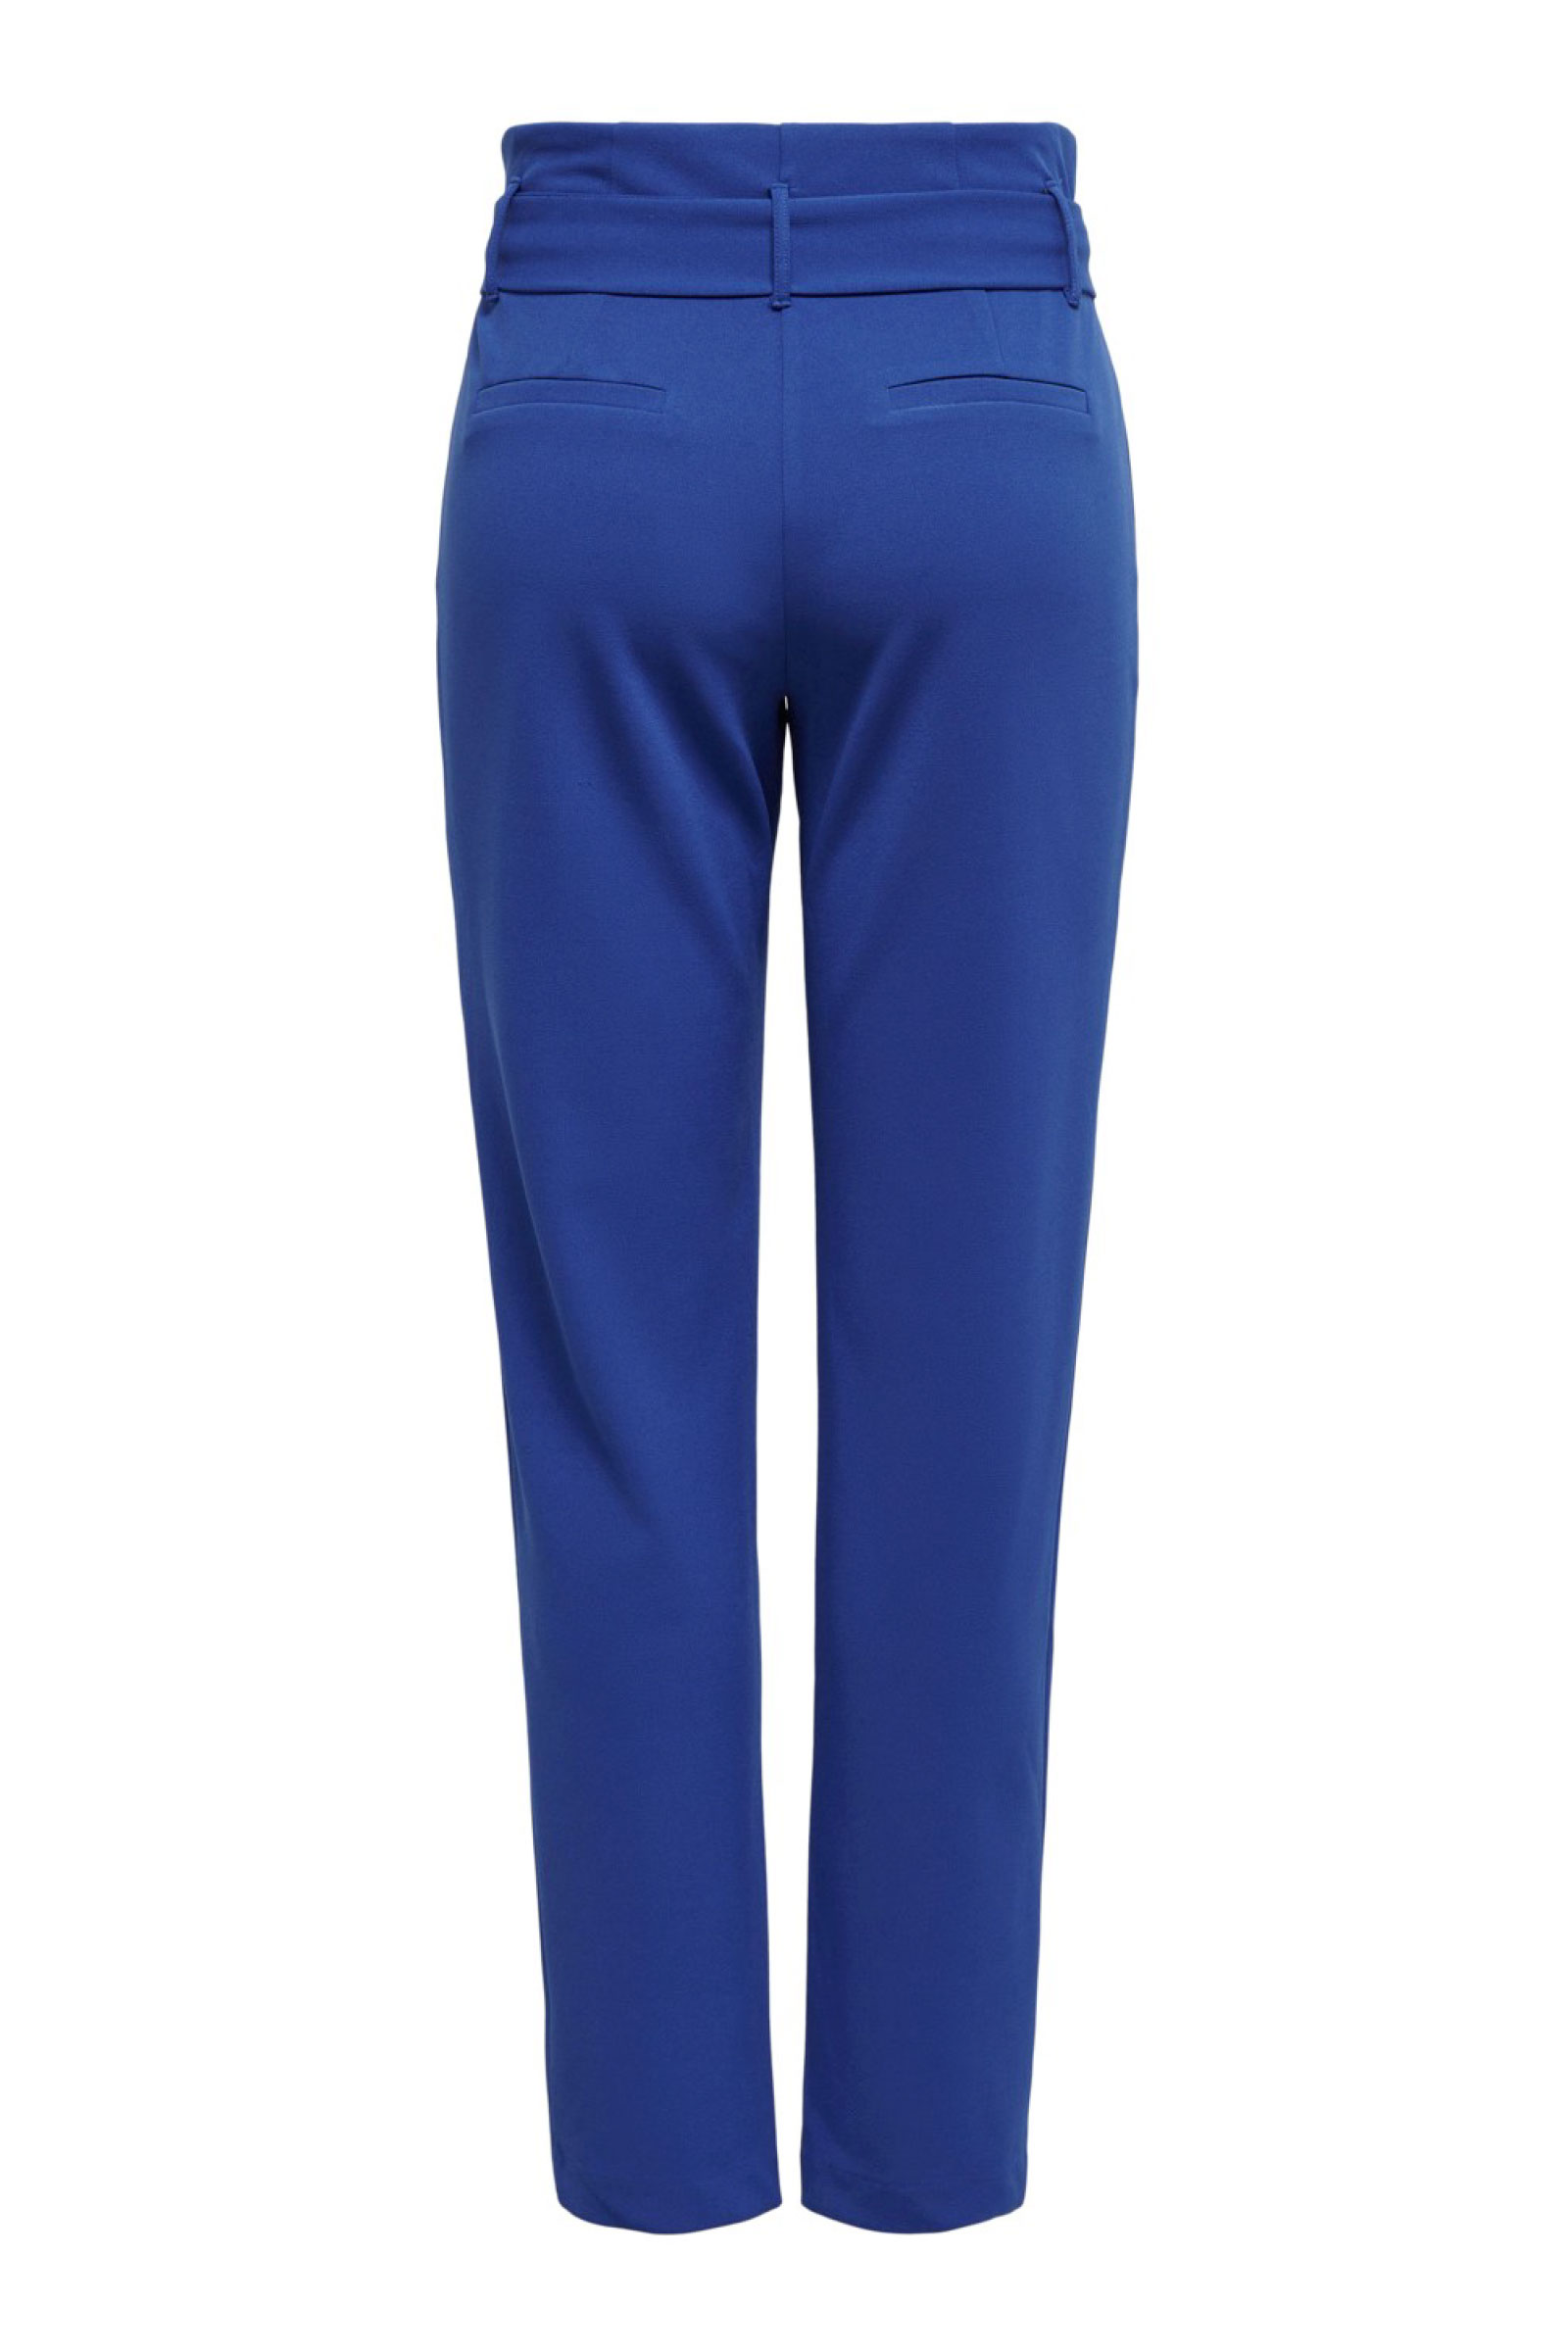 ONLY Carolina Model Woman Trousers ONLY | Trousers | 15178680Mazarine Blue